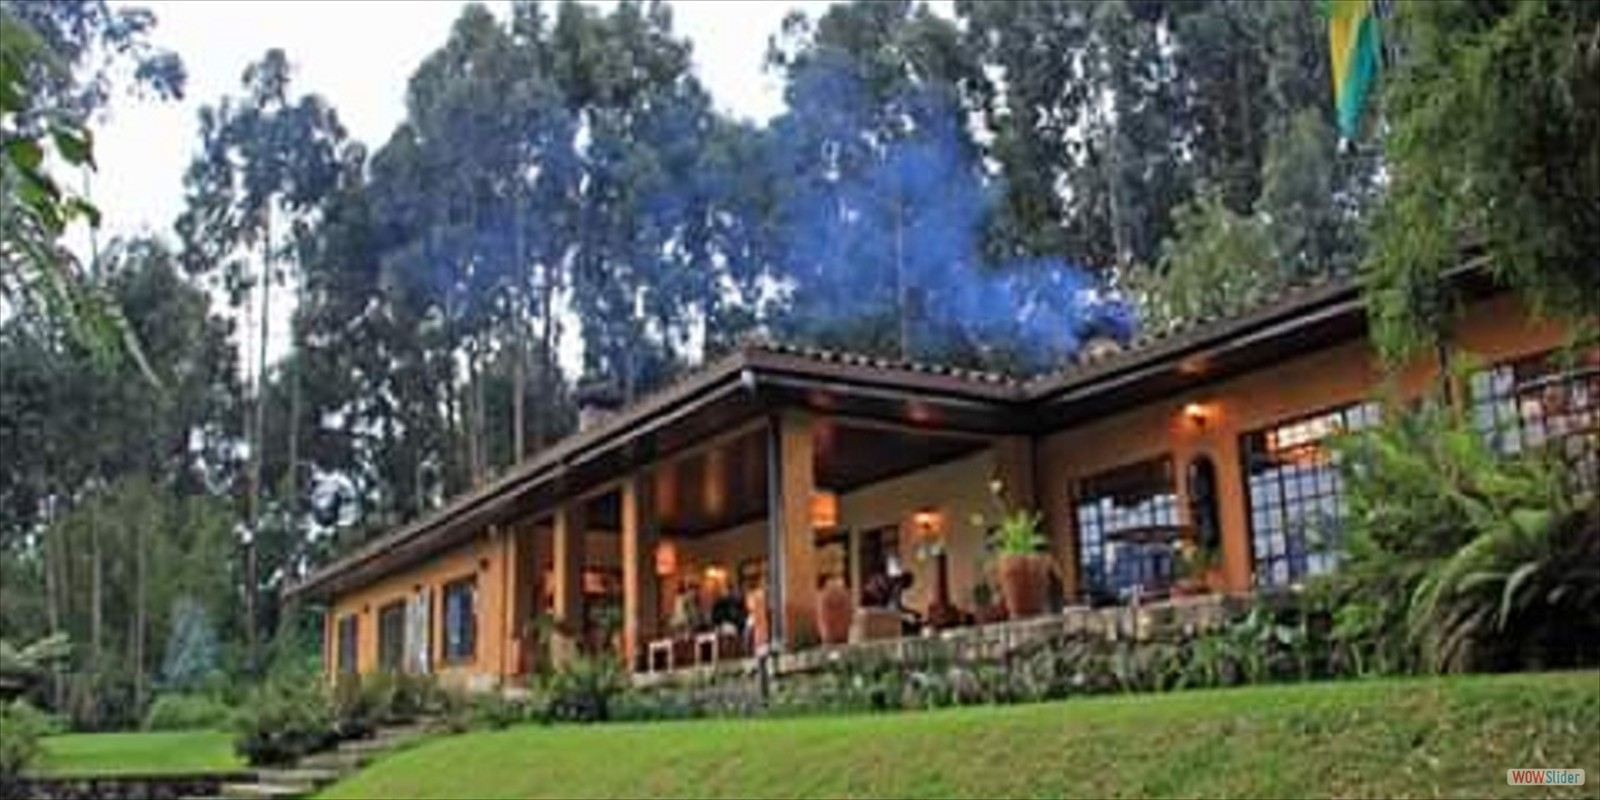 LODGES VOLCANOES NATIONAL PARK RWANDA, ACCOMMODATION, GOVERNORS SABYINYO SILVER BACK LODGE, BISATE LODGE, GORILLA SAFARIS RWANDA, GORILLA NEST LODGE, KINIGI GUEST HOUSE, ATTRACTION, ACTIVITIES, WHAT TO DO, WHAT TO SEE GORILLA PERMITS, BOOKING, TREKKING RULES, REGULATIONS WHAT TO BRING,